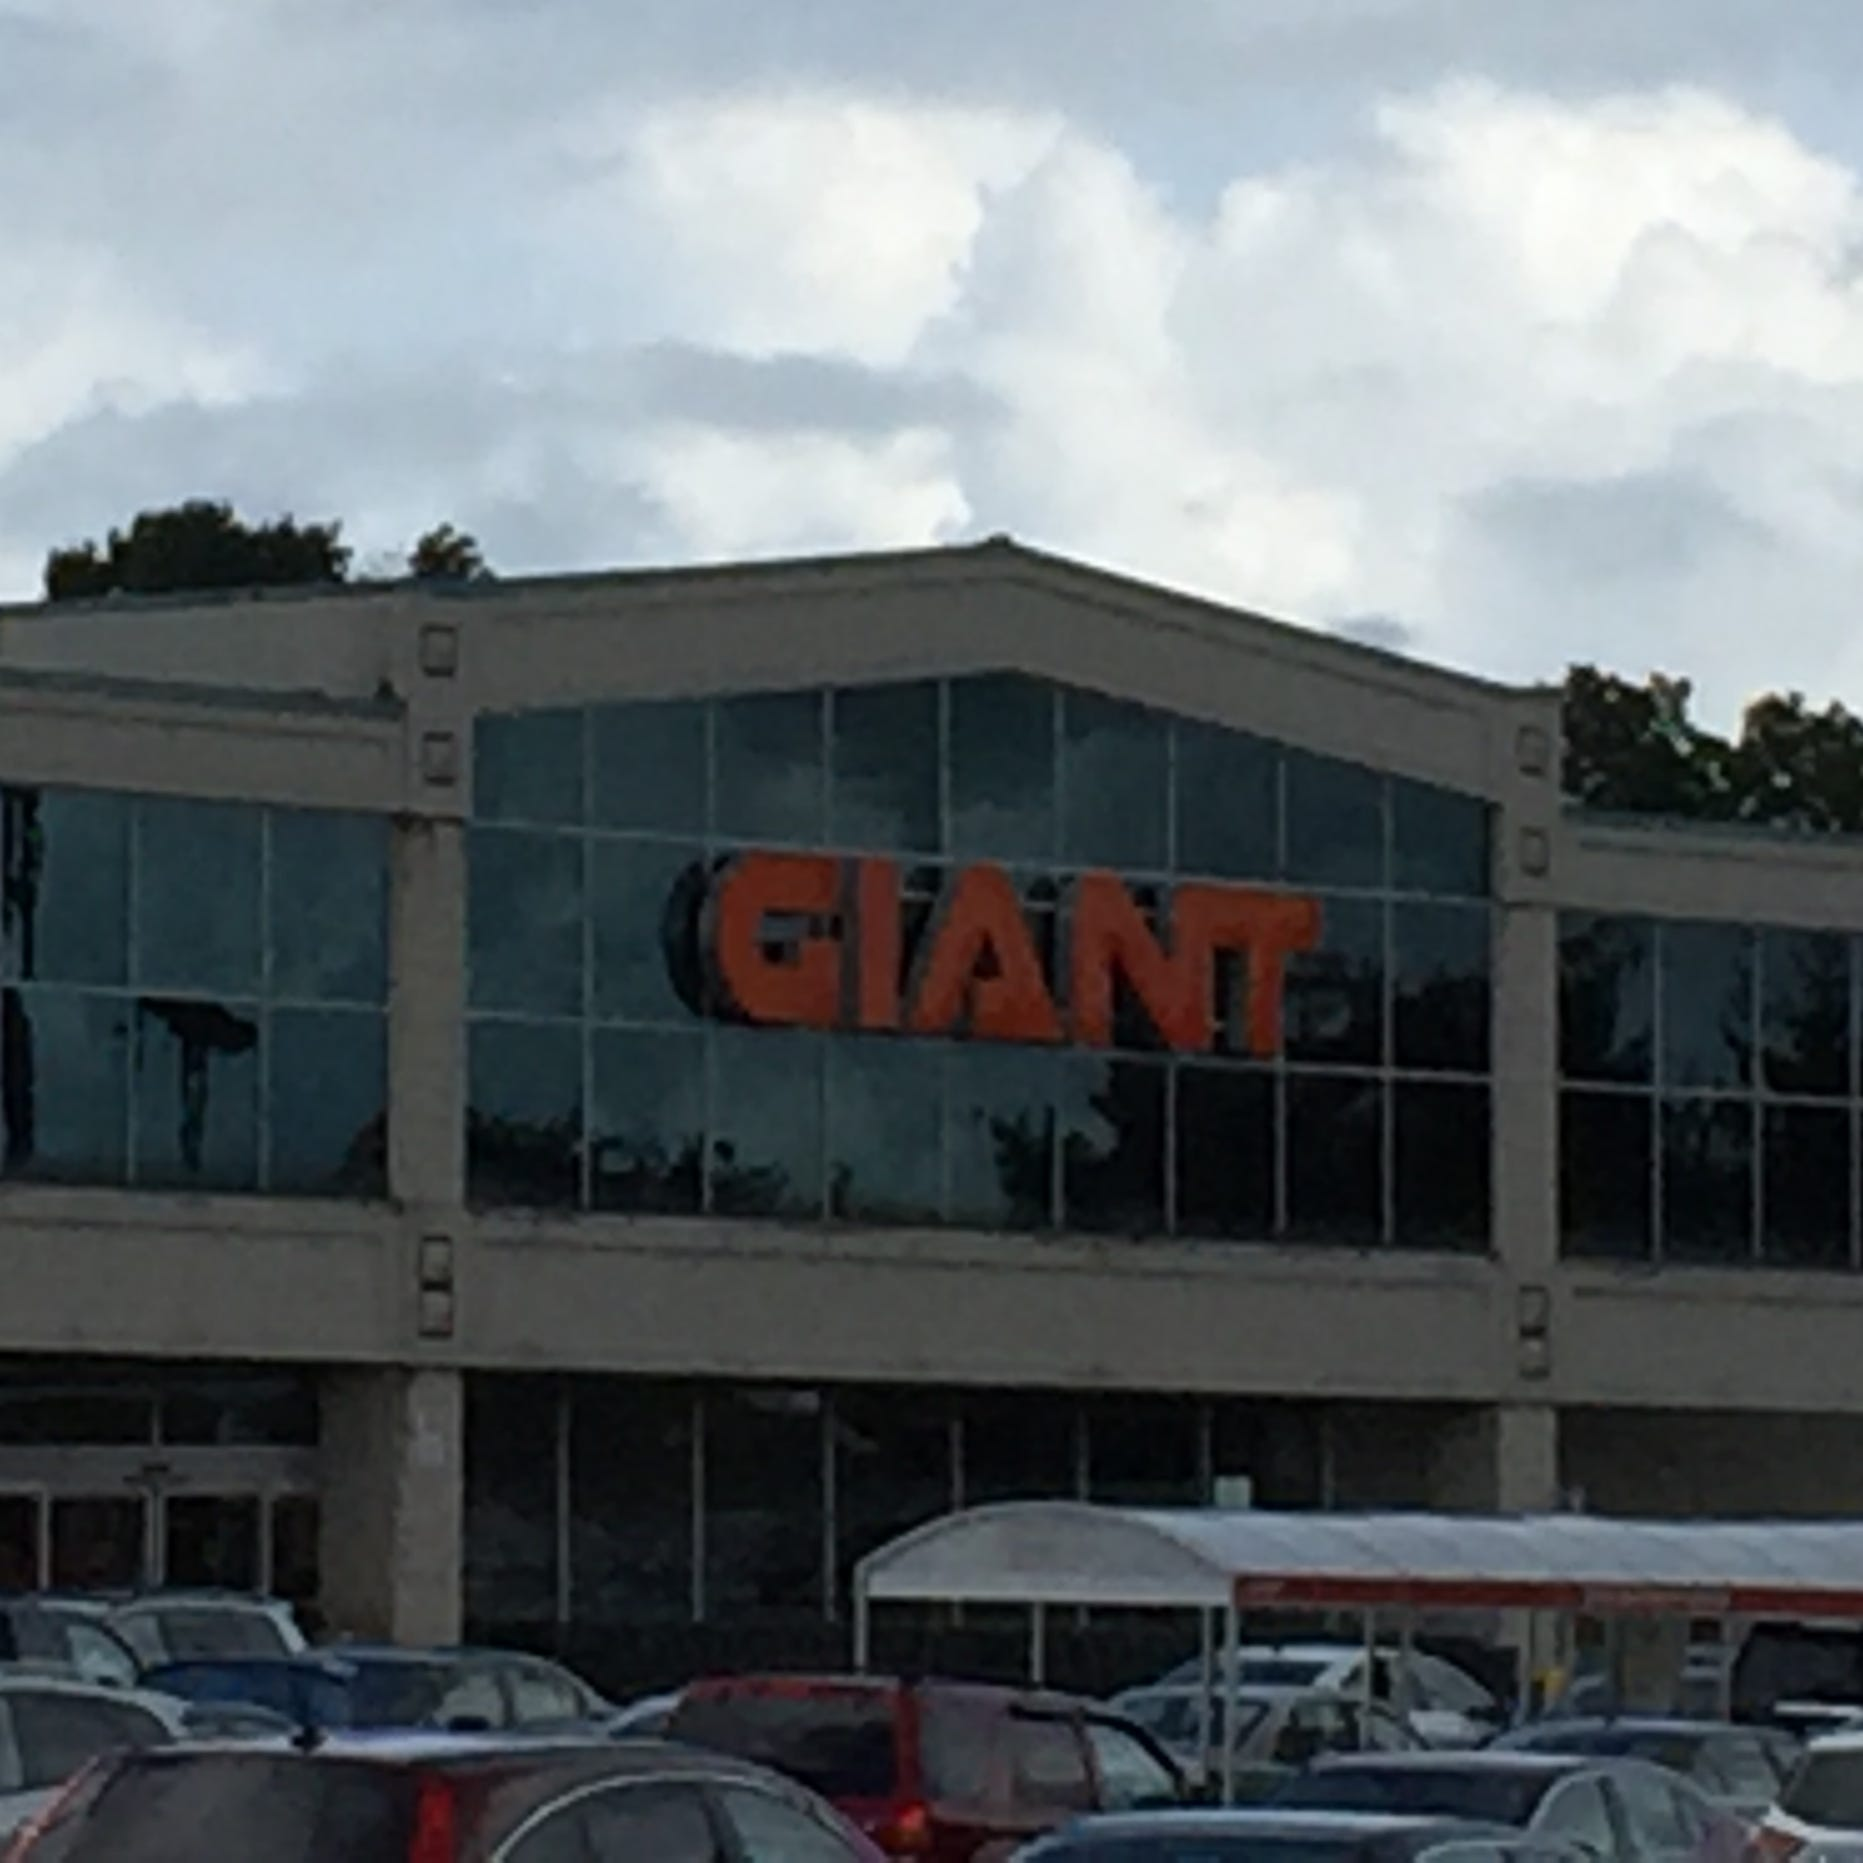 Cleona votes to end 'dry' status, permitting Giant to sell beer